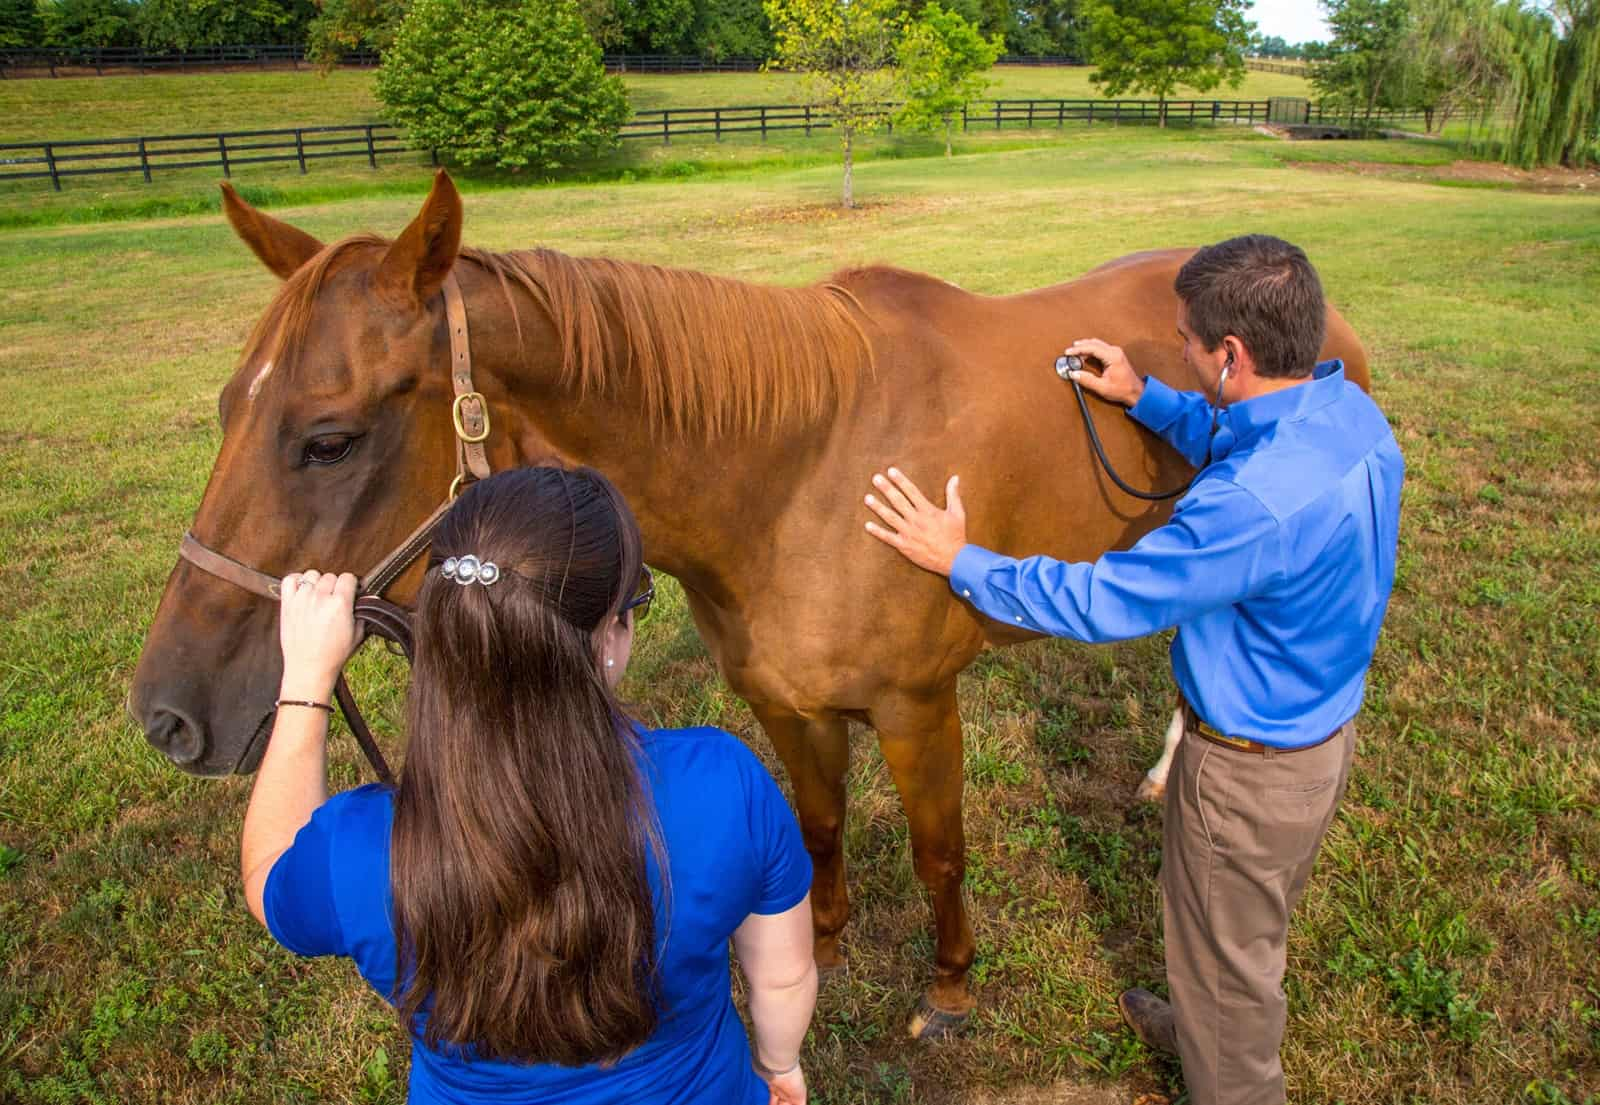 Operation G.E.L.D. works with veterinarians to make gelding accessible and affordable for Maryland horse owners facing financial hardships. - Together we can reduce the number of horses at risk.